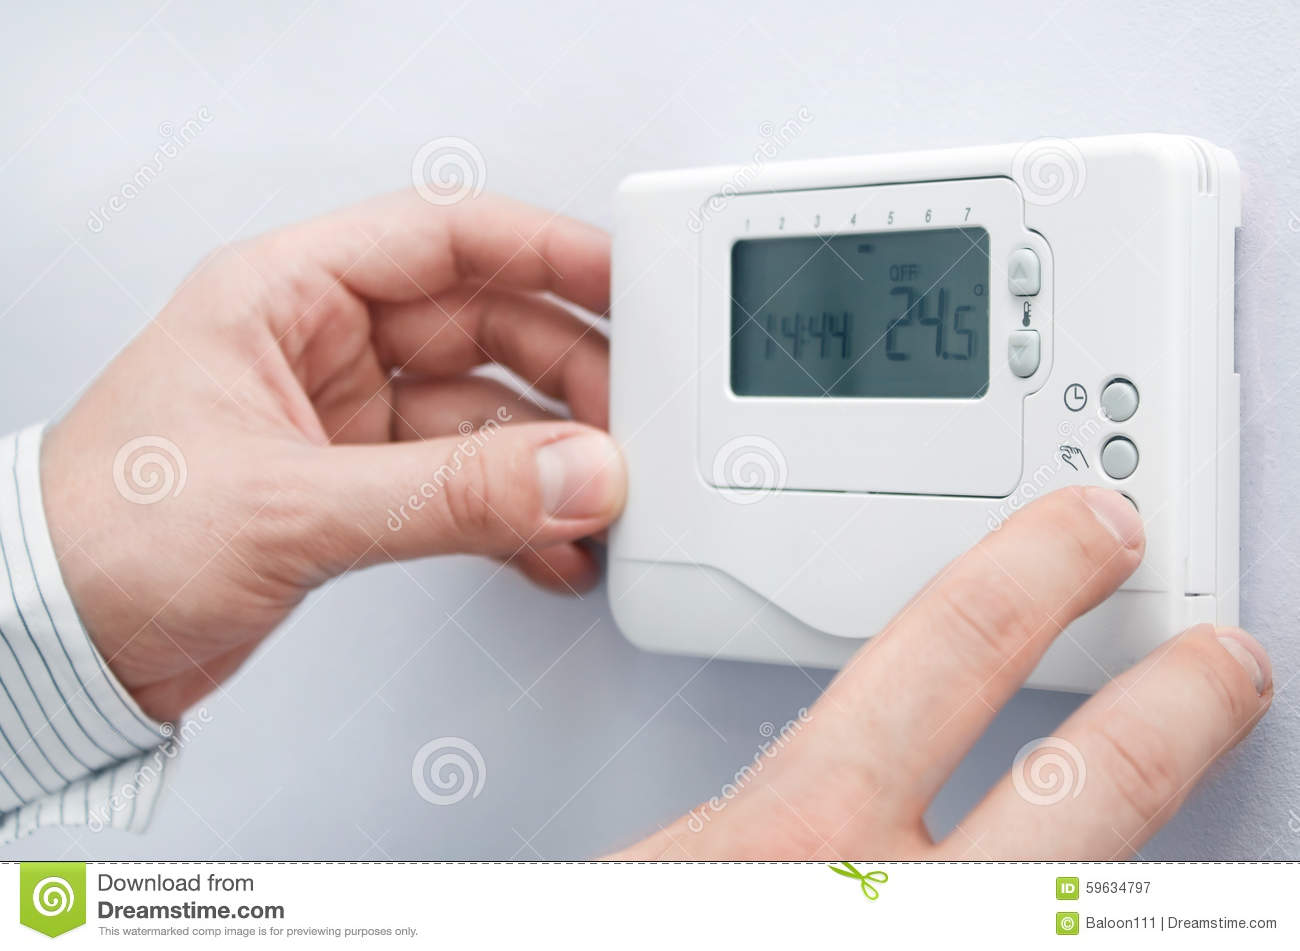 Thermostat temperature setting in a modern home stock for Heat setting for home